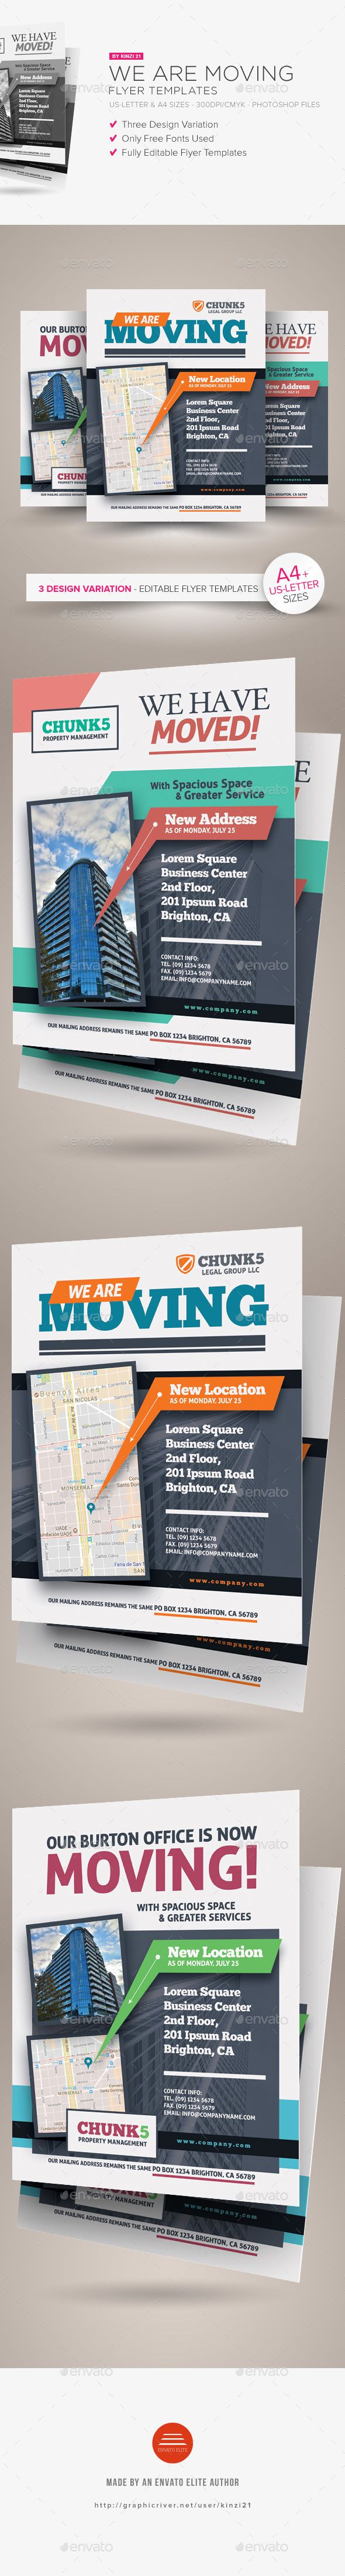 we are moving flyer templates corporate flyers graphic design